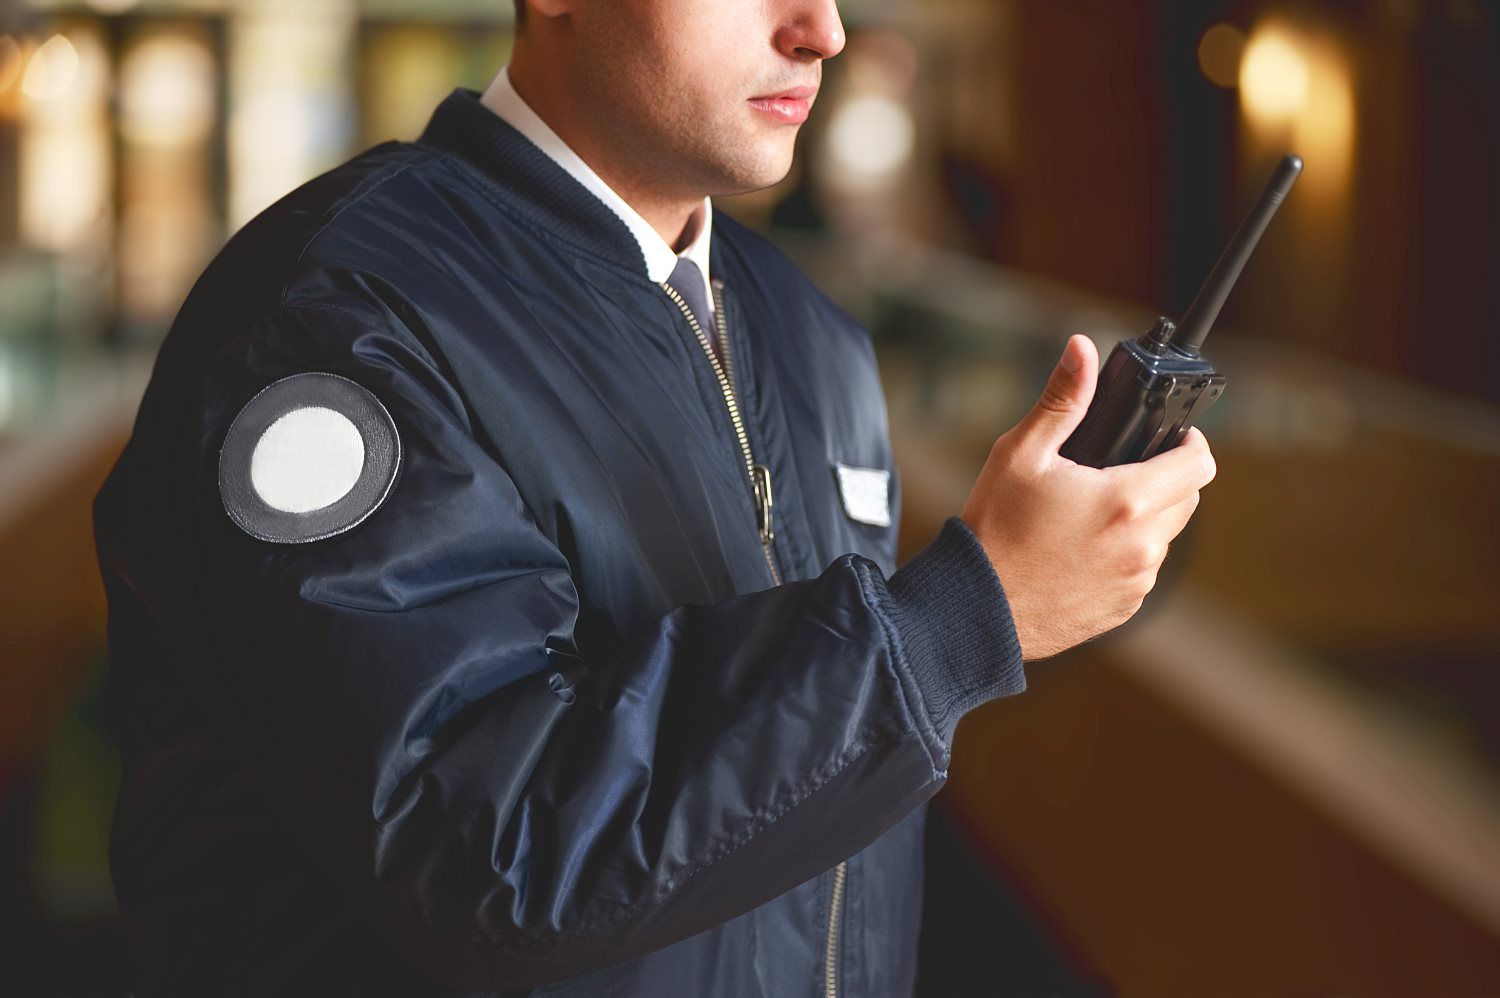 Security Guard holding a radio